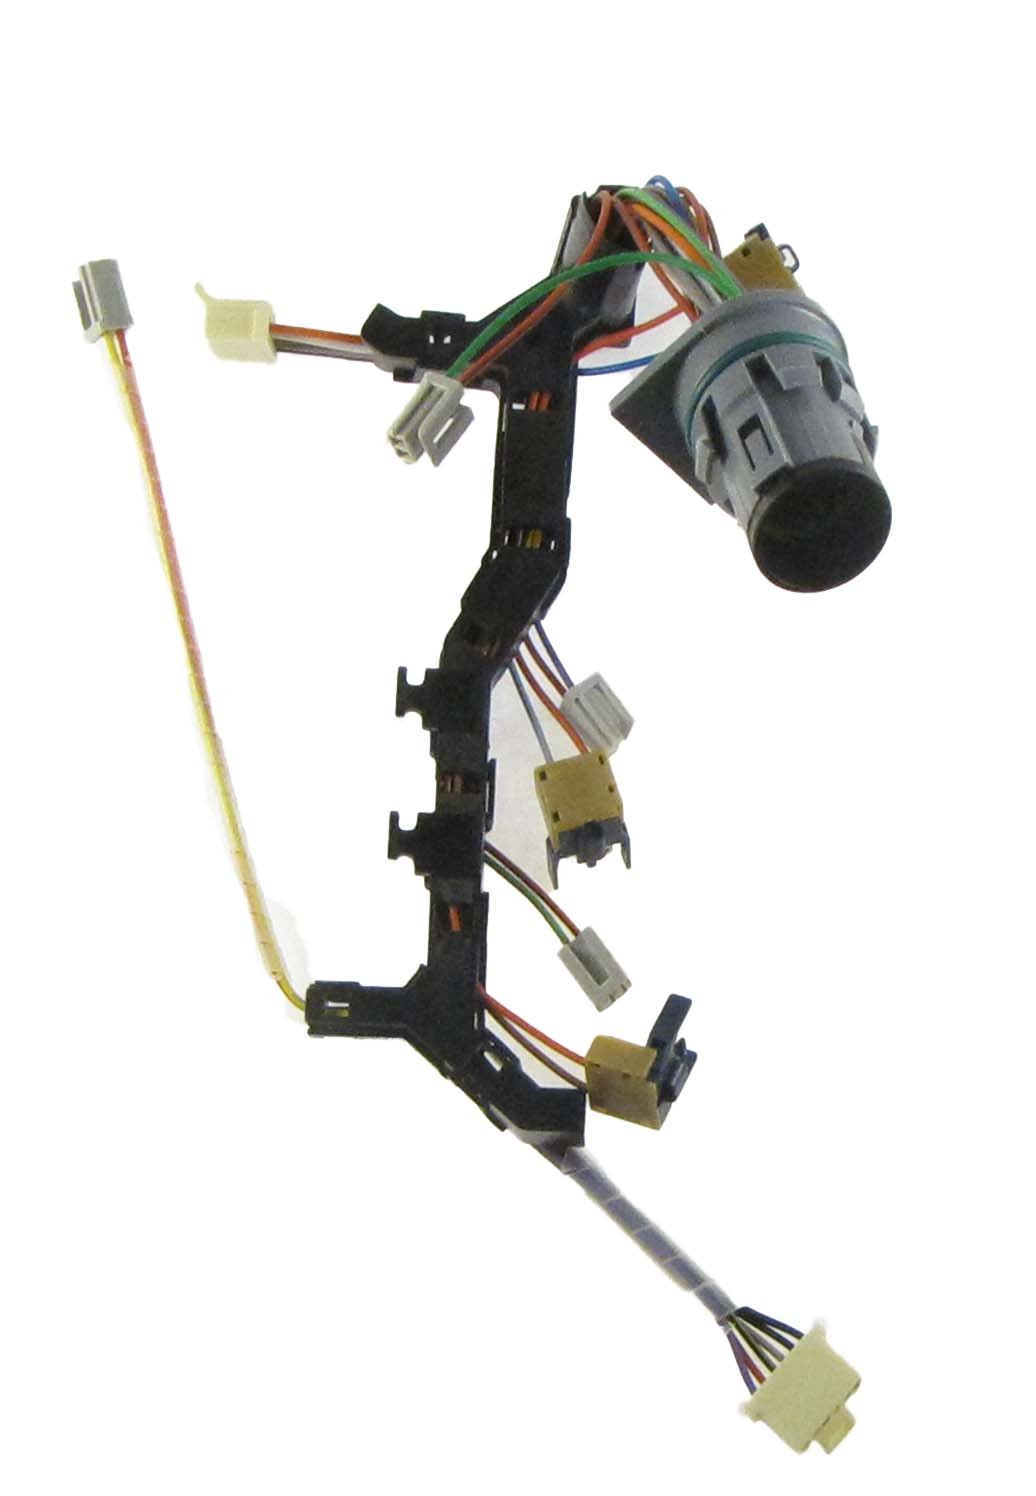 Rostra Wire Harness For Allison Transmission 7 Solenoid 2000 Wiring Type Automotive